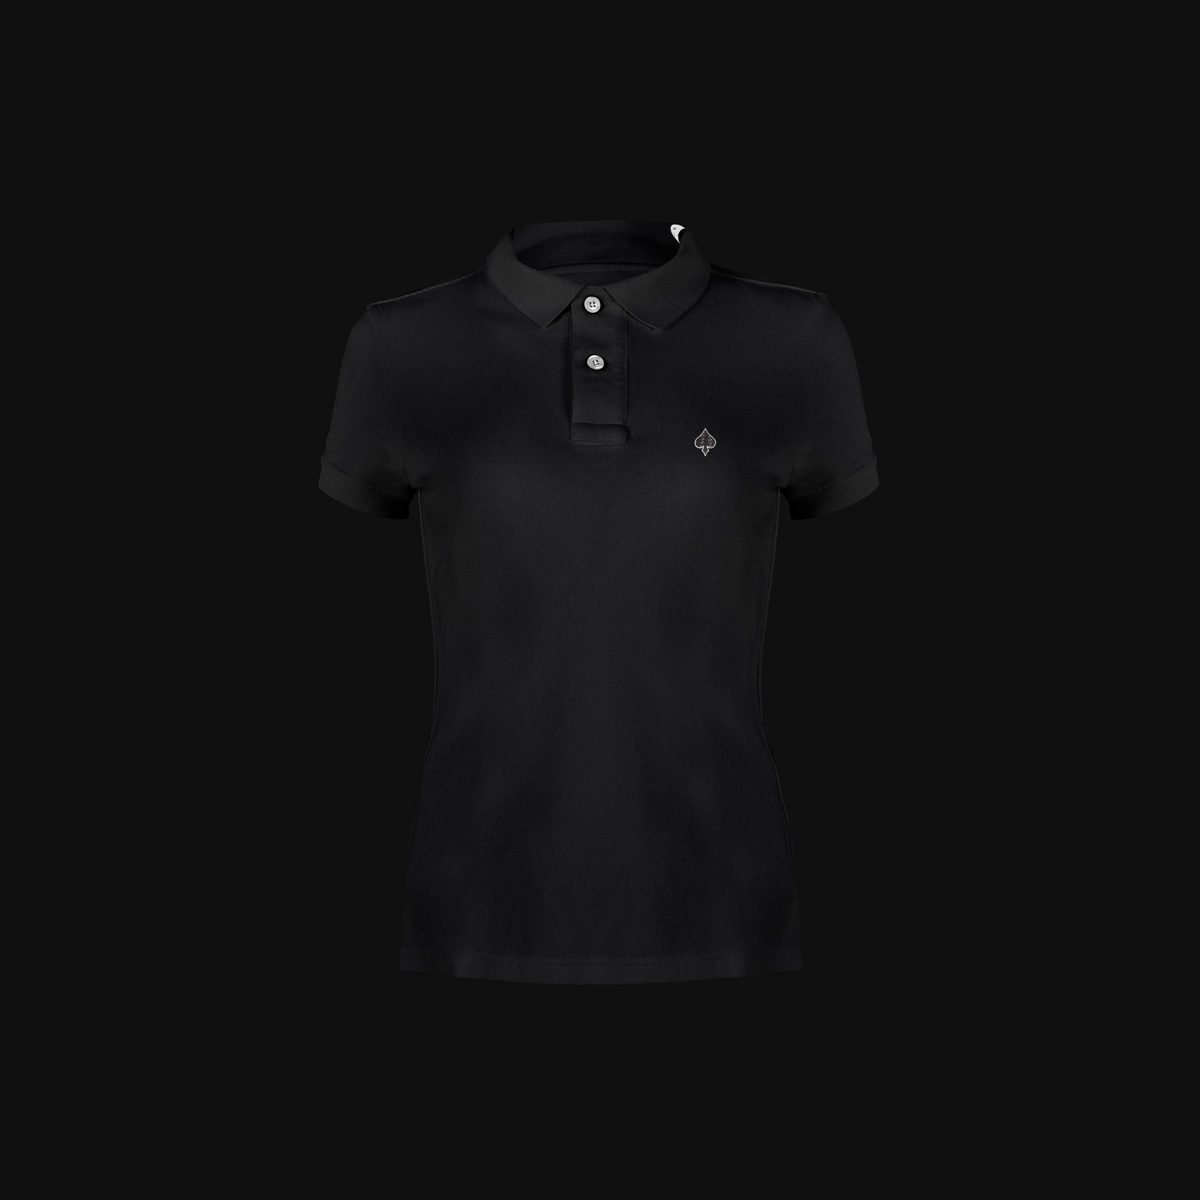 The Exclusive Black Ace polo with carbon fiber for woman